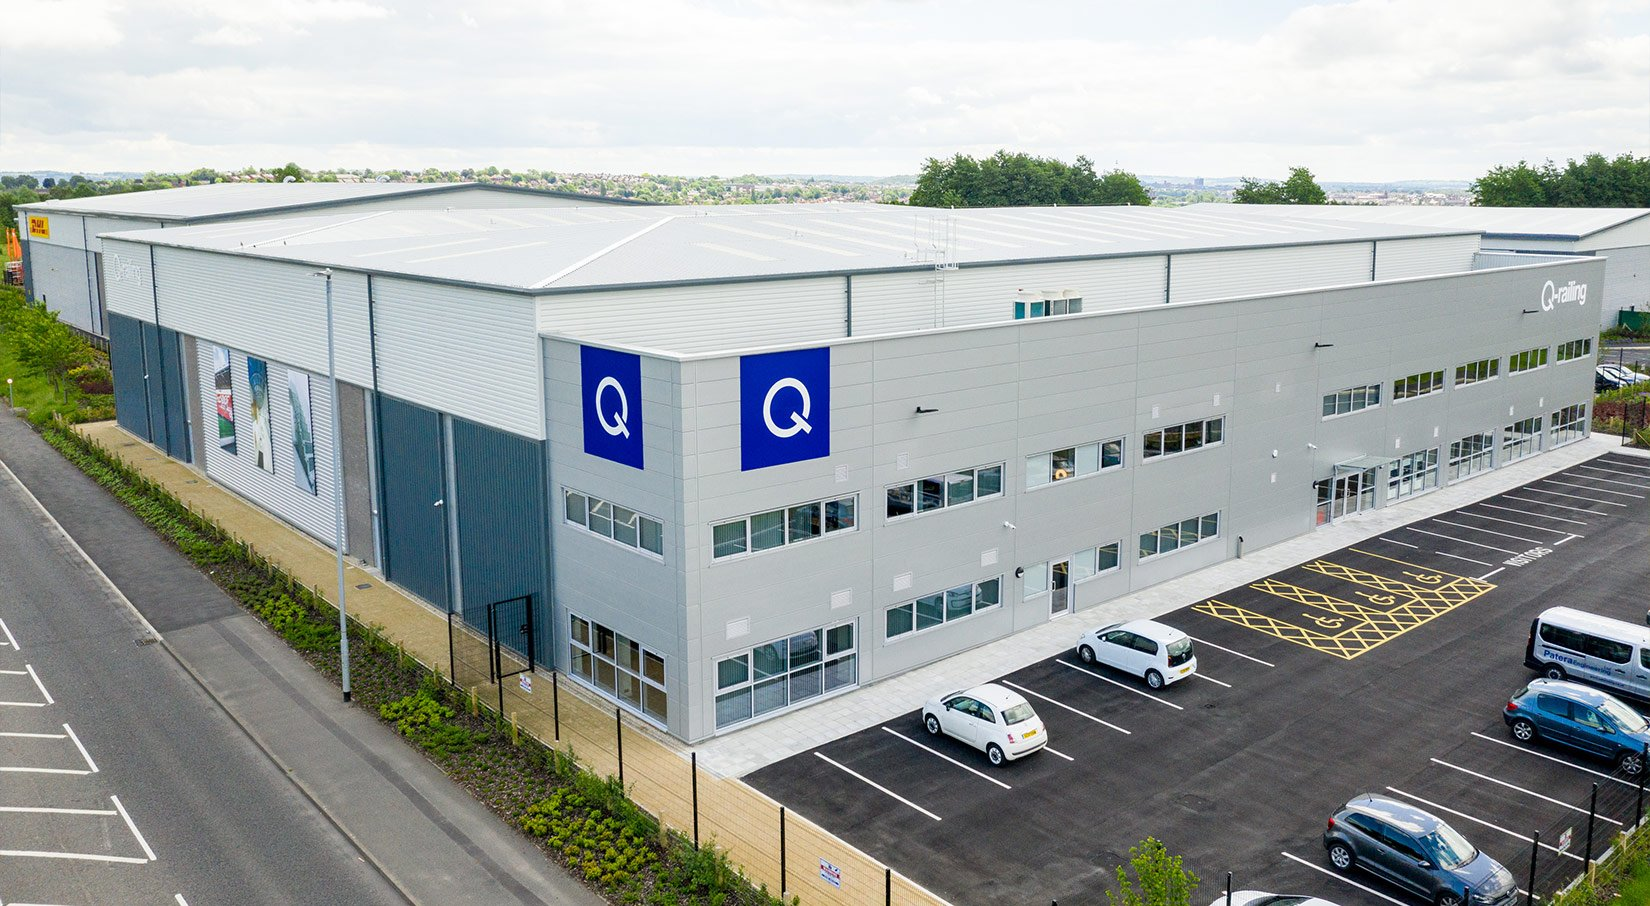 Tunstall Arrow, Stoke-on-trent, Unit 1 aerial